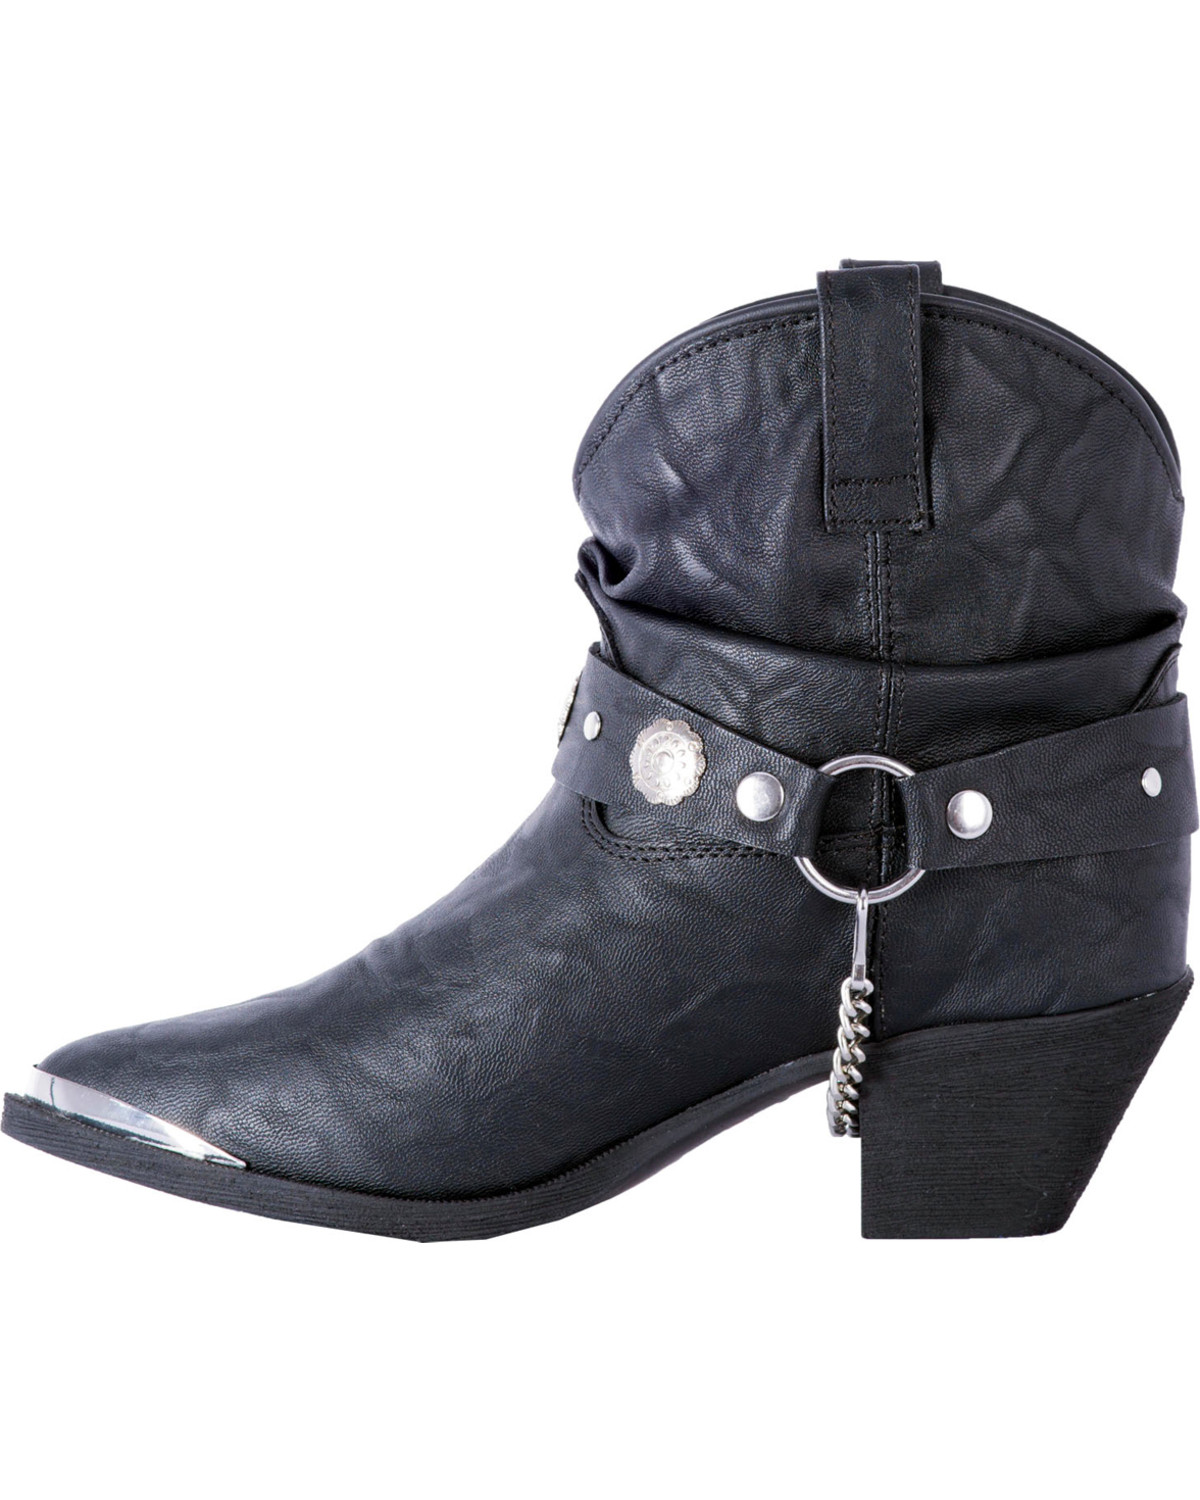 Dingo Women S Black Leather Concho Strap Slouch Booties